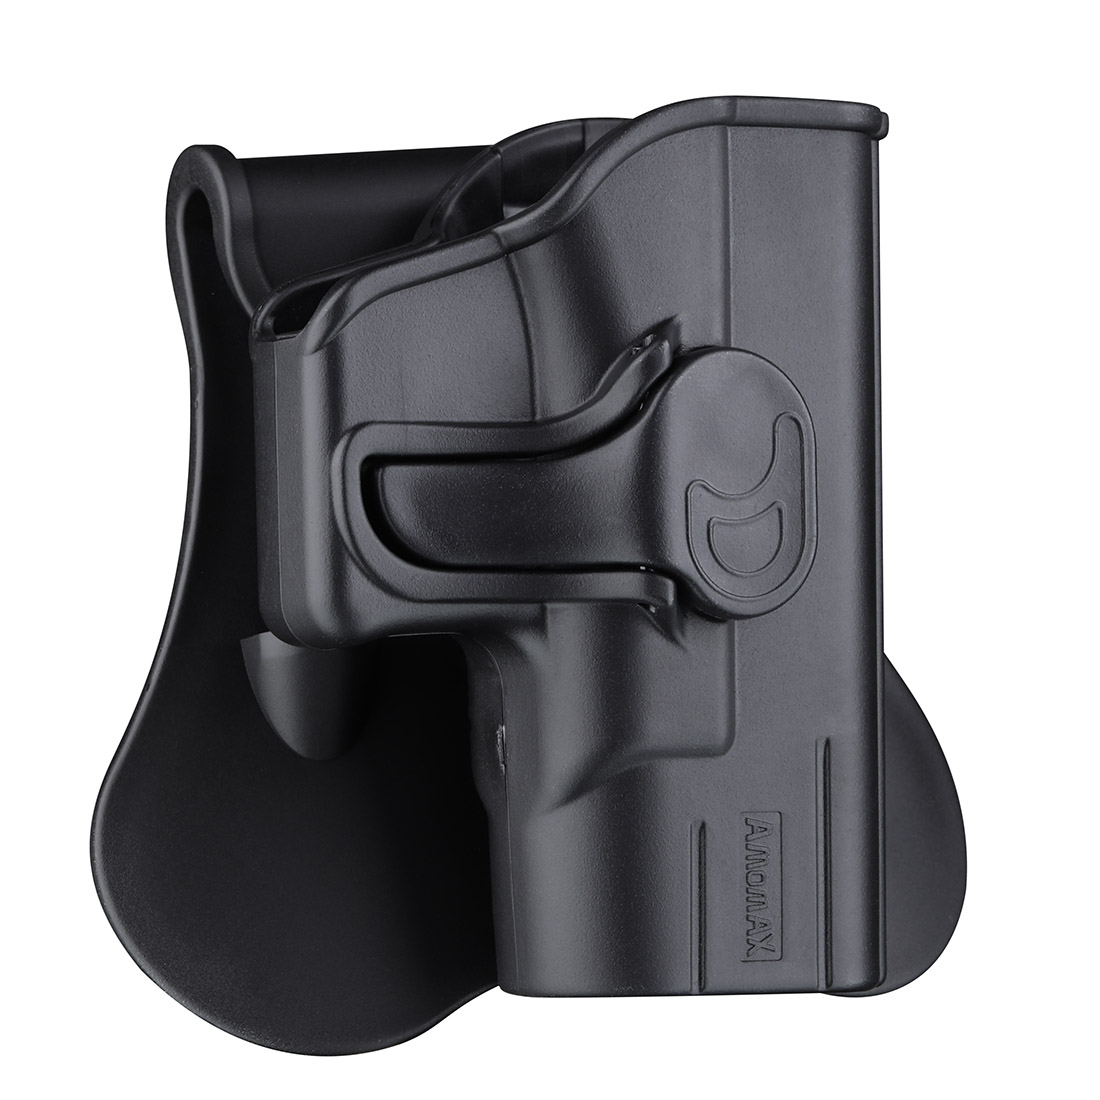 Amomax Adjustable Tactical Holster for Glock43 - Right-handed Black(Standard only with waist plate, no other accessories)